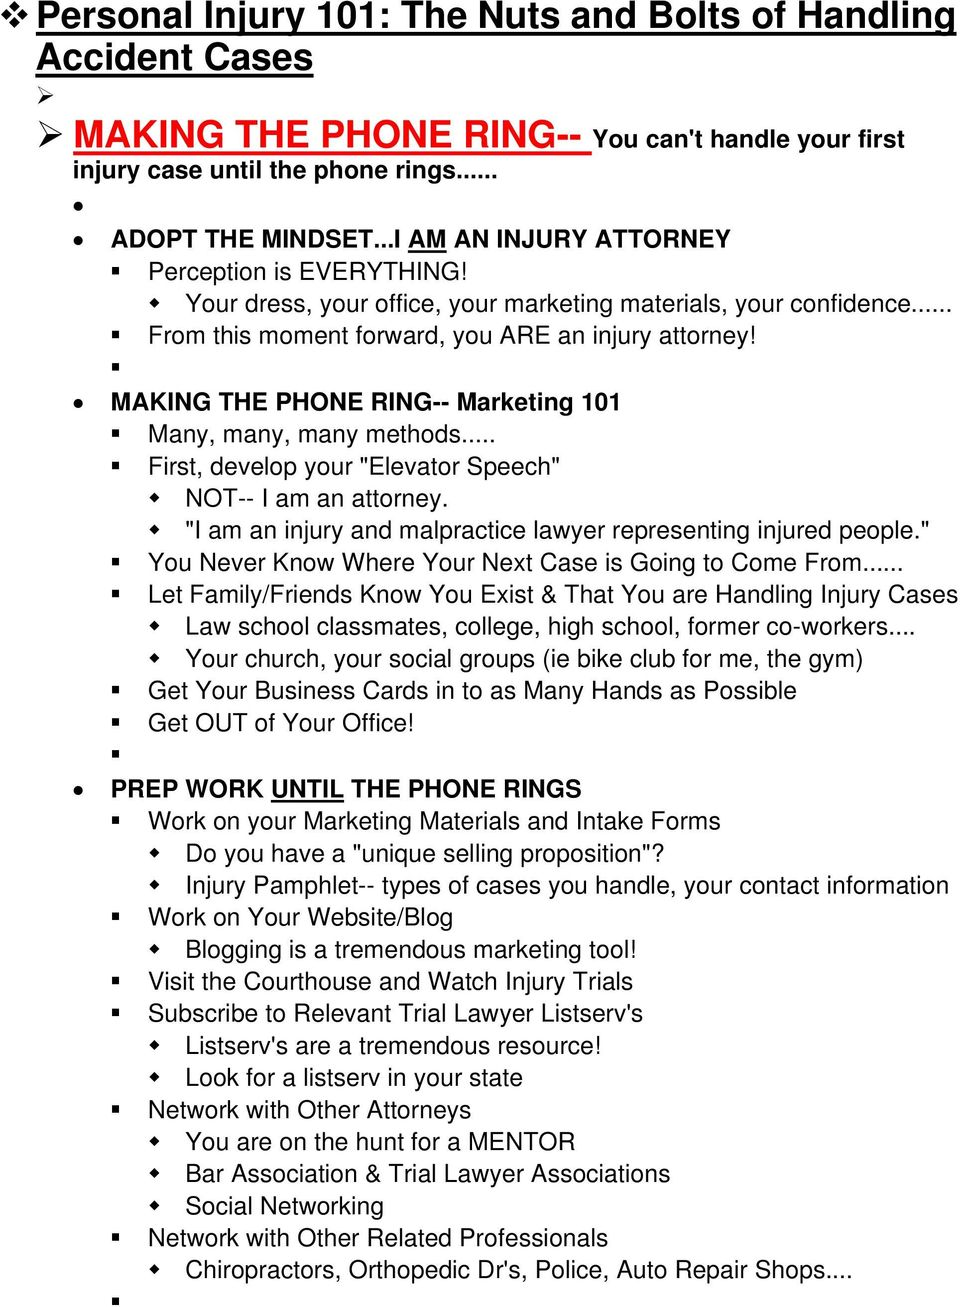 "MAKING THE PHONE RING-- Marketing 101 Many, many, many methods... First, develop your ""Elevator Speech"" NOT-- I am an attorney. ""I am an injury and malpractice lawyer representing injured people."